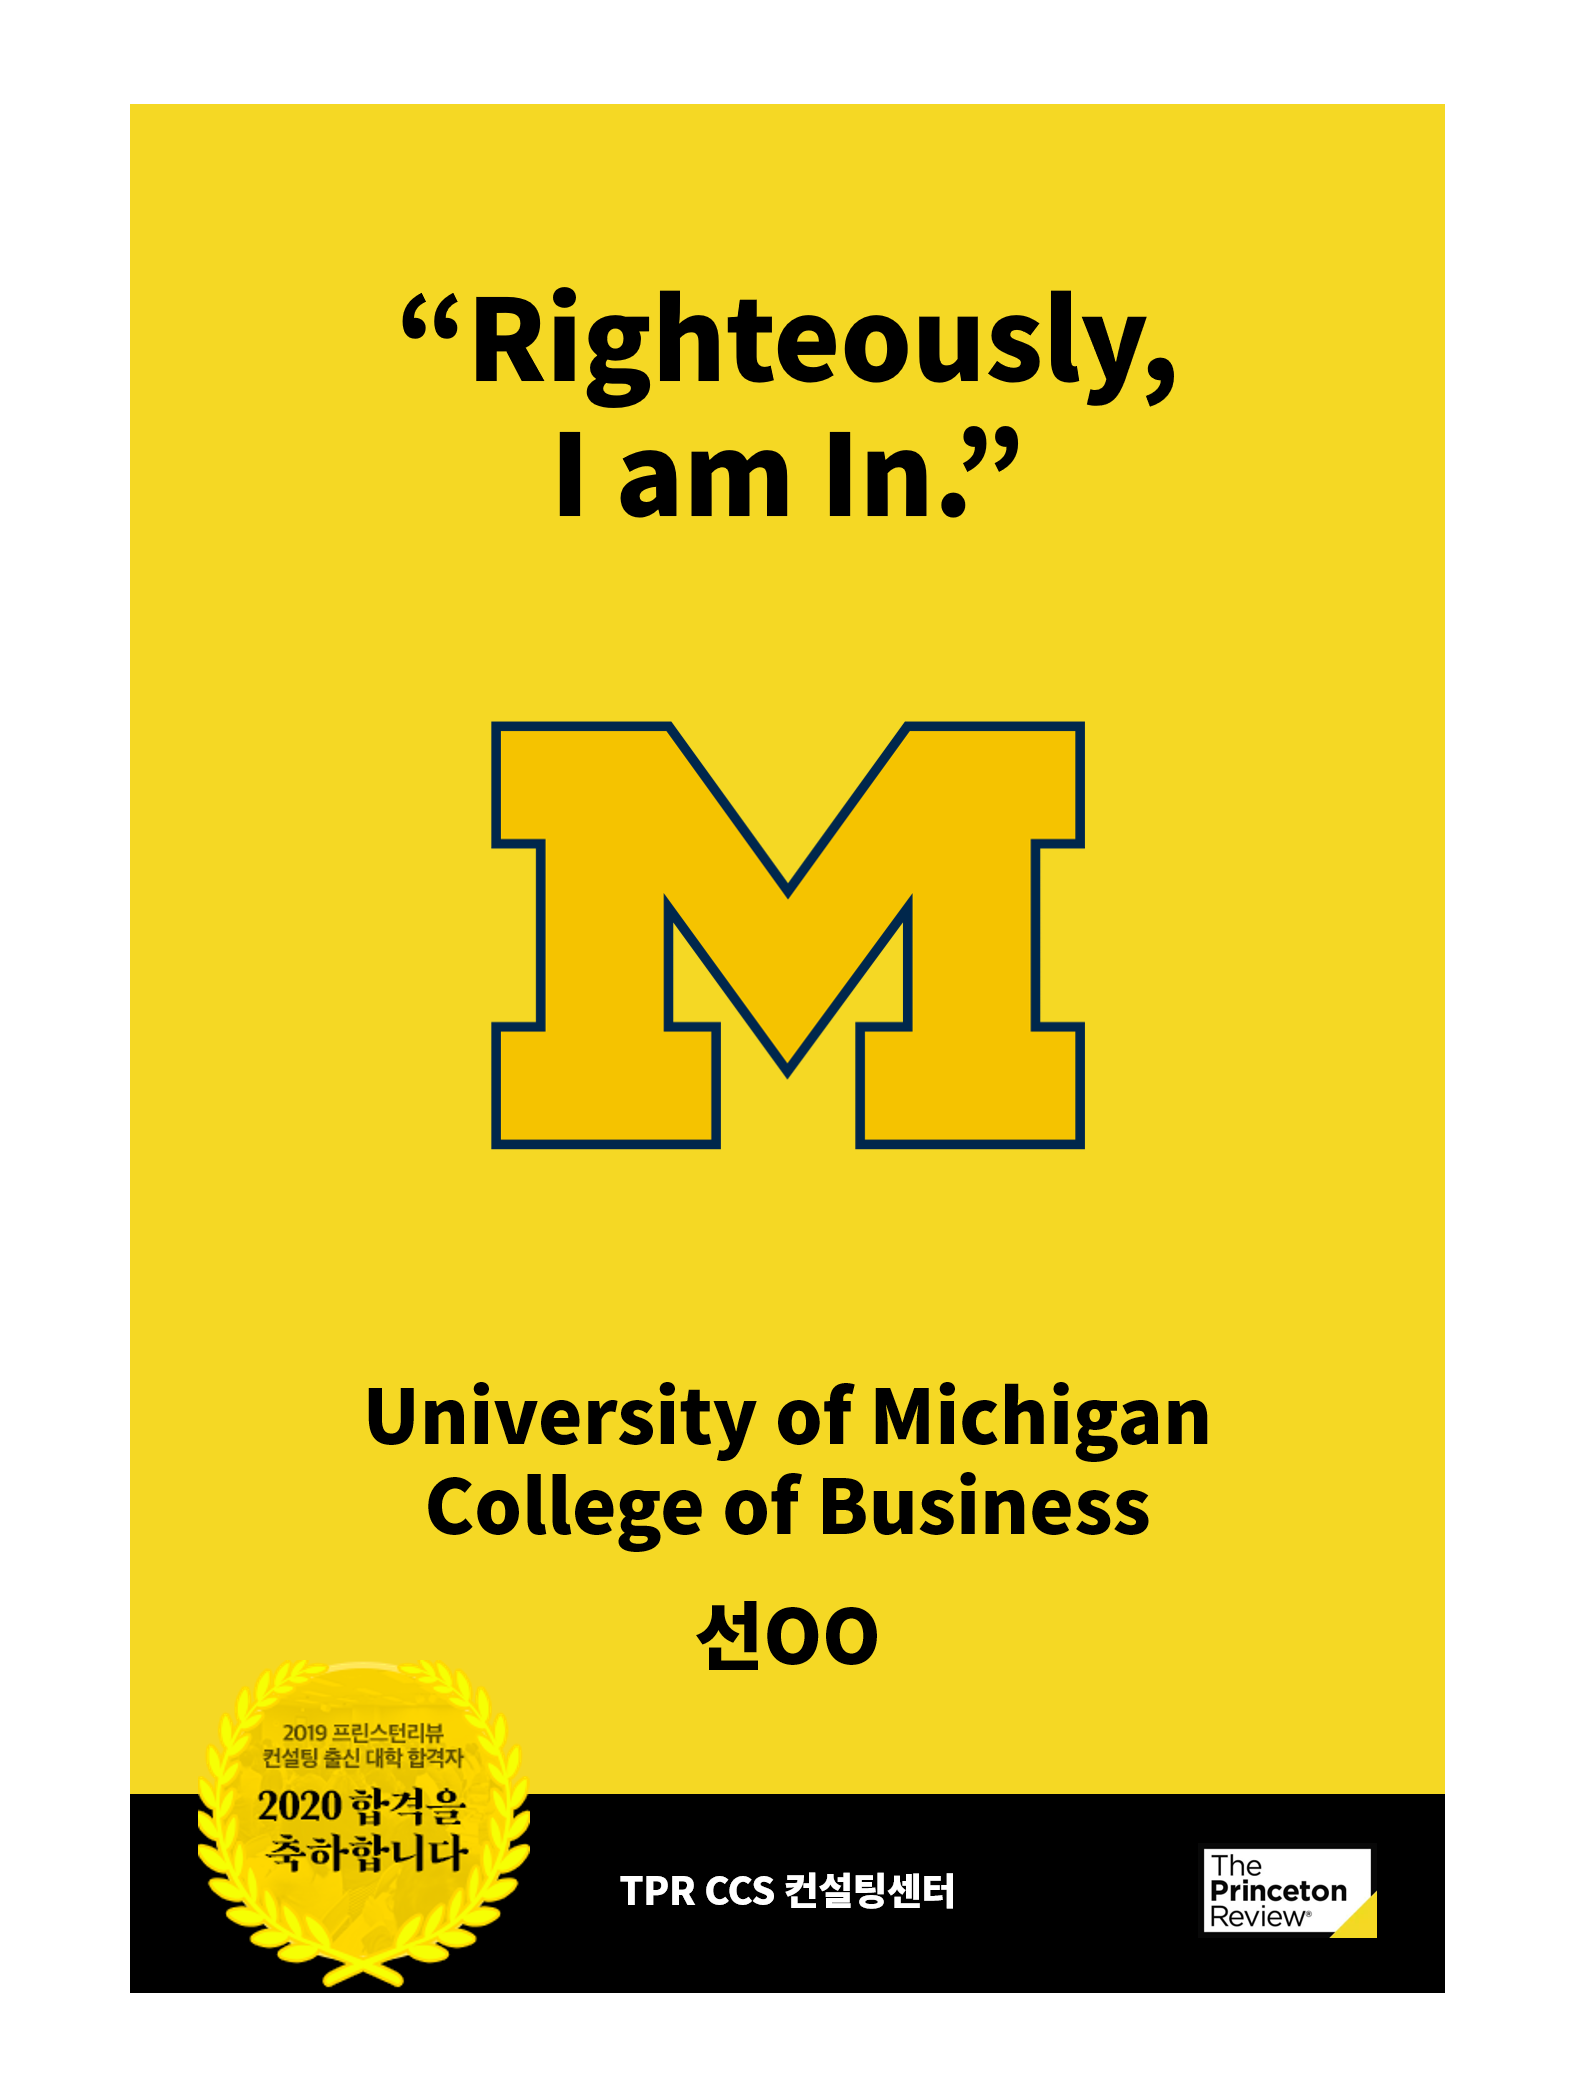 University of Michigan 선OO